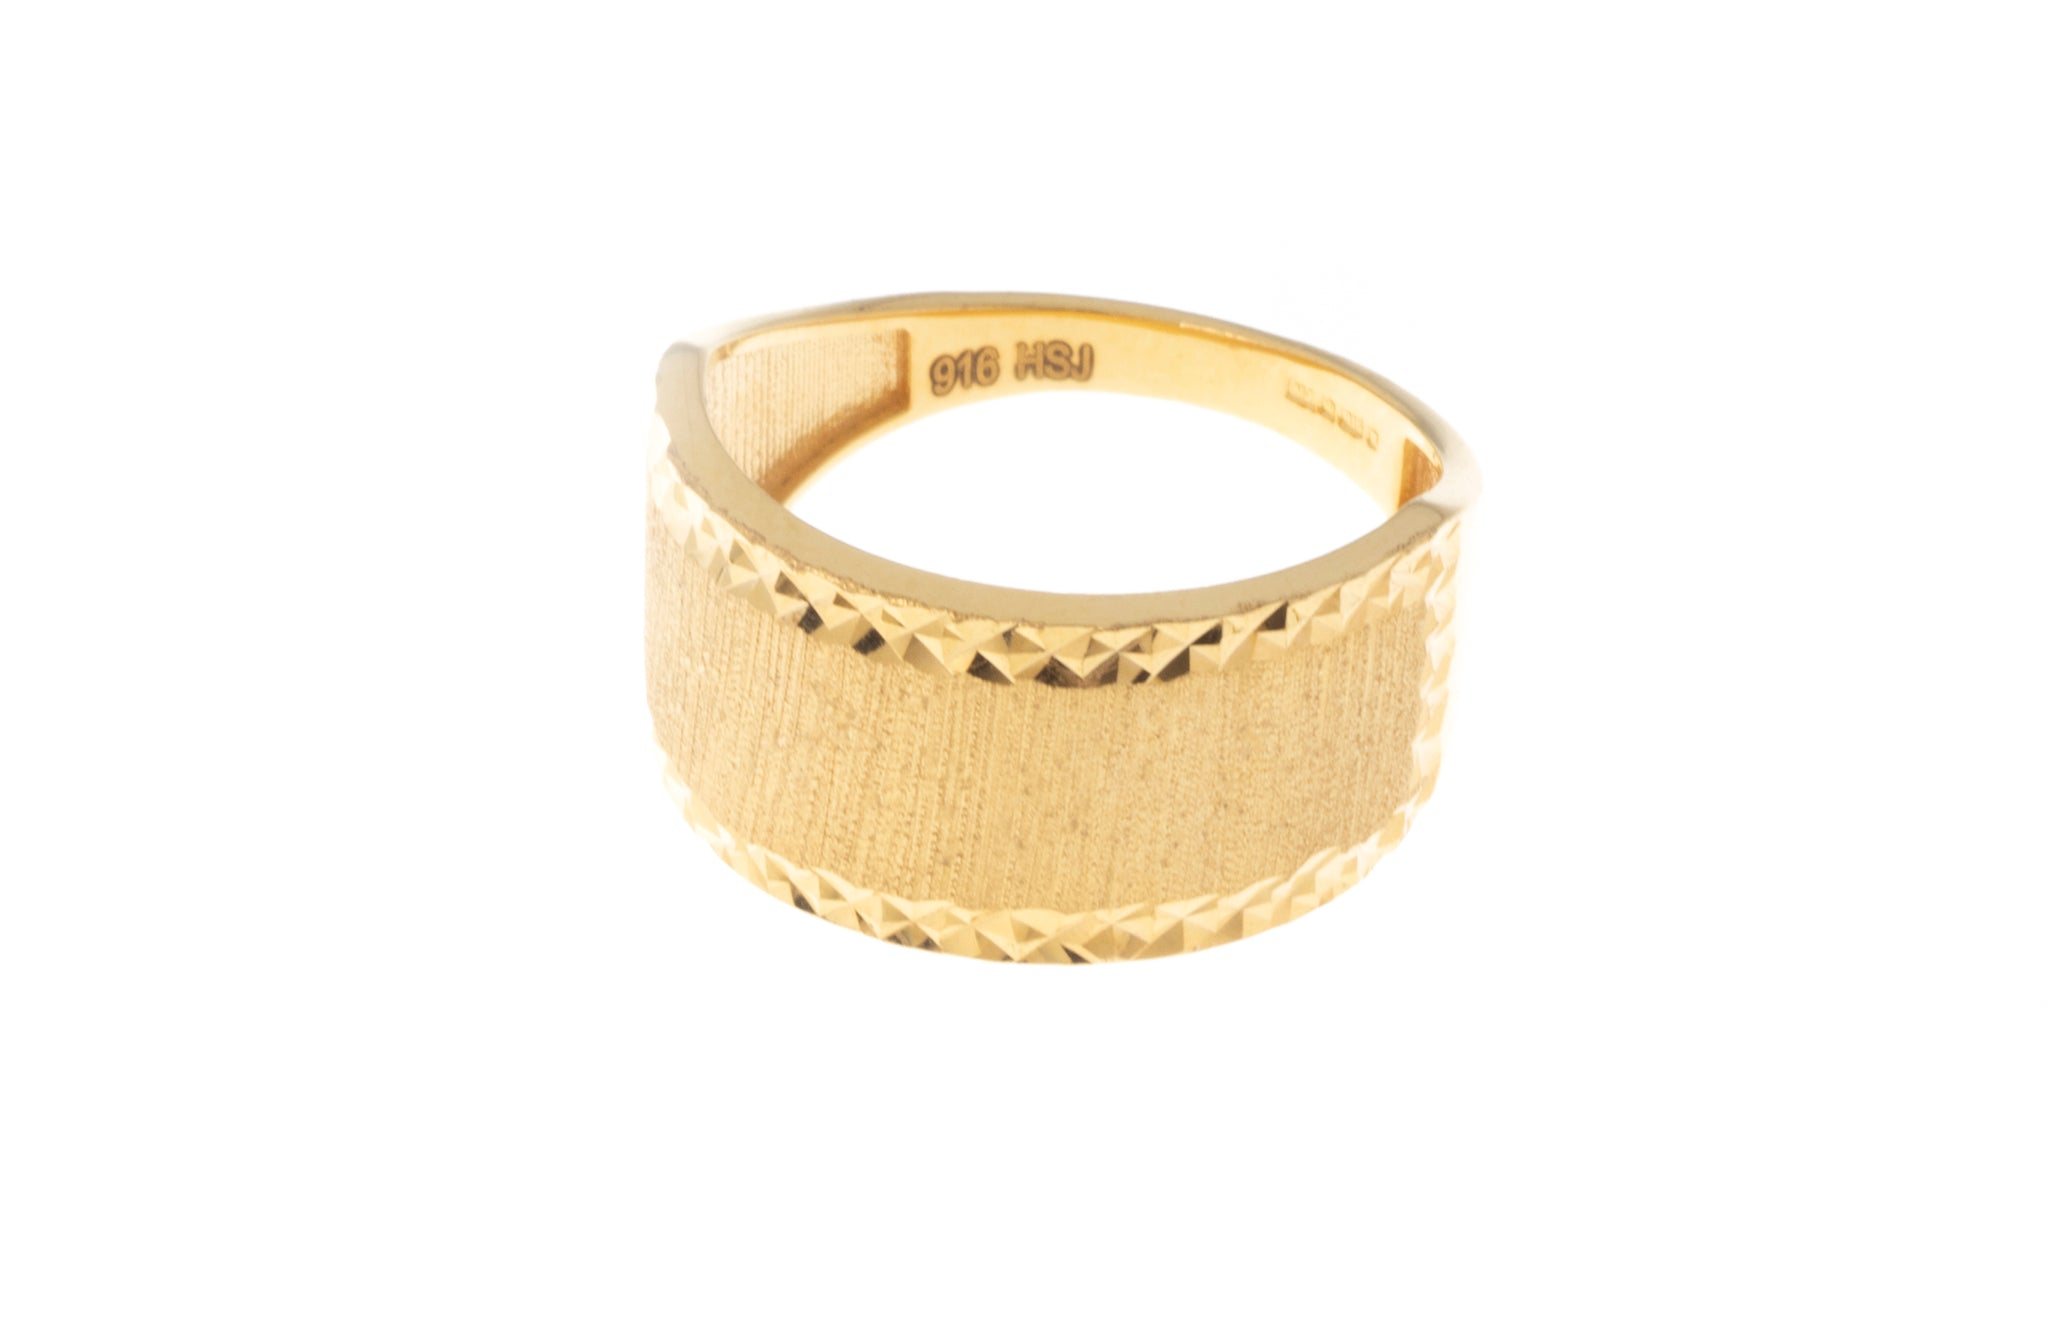 22ct Gold Dress Ring with Satin Finish (3.8g) LR-7351